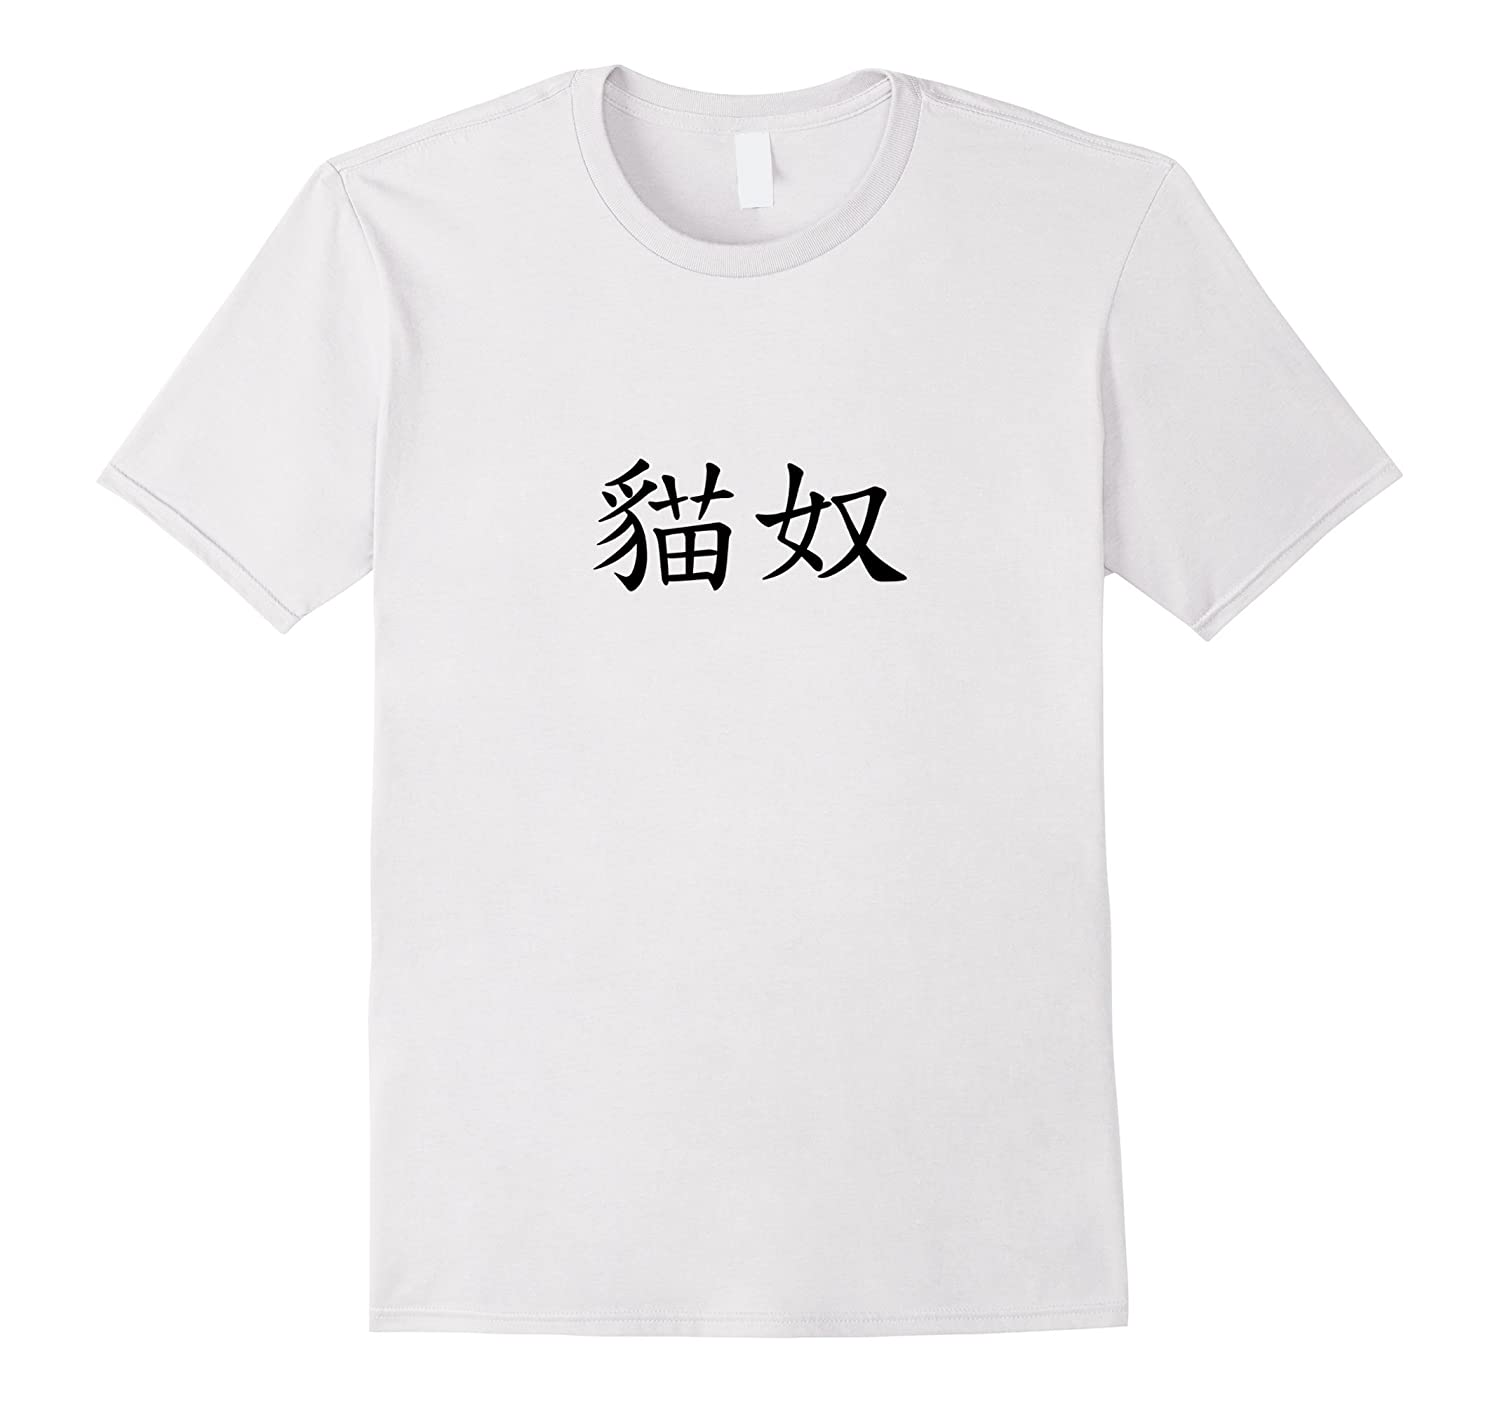 Cat Slave T Shirt In Chinese Character For Cat Lovers Bn Banazatee